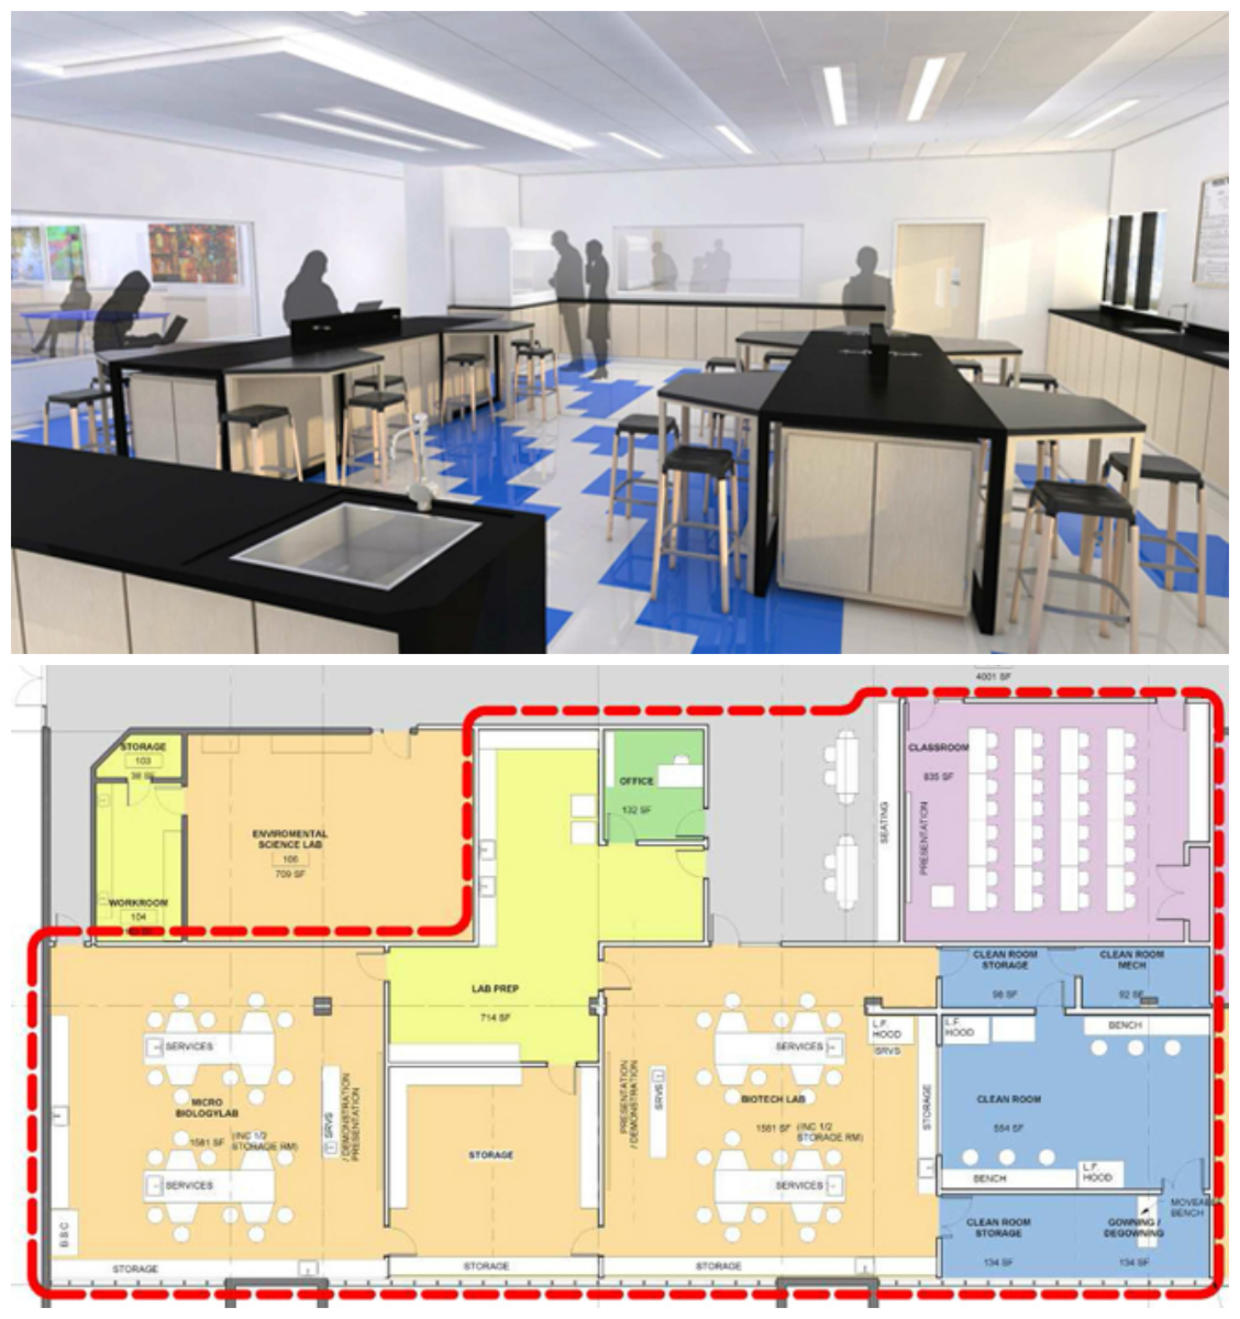 Holyoke Community College Campus Map.Holyoke Community College New Life Sciences Center At Marieb Hall